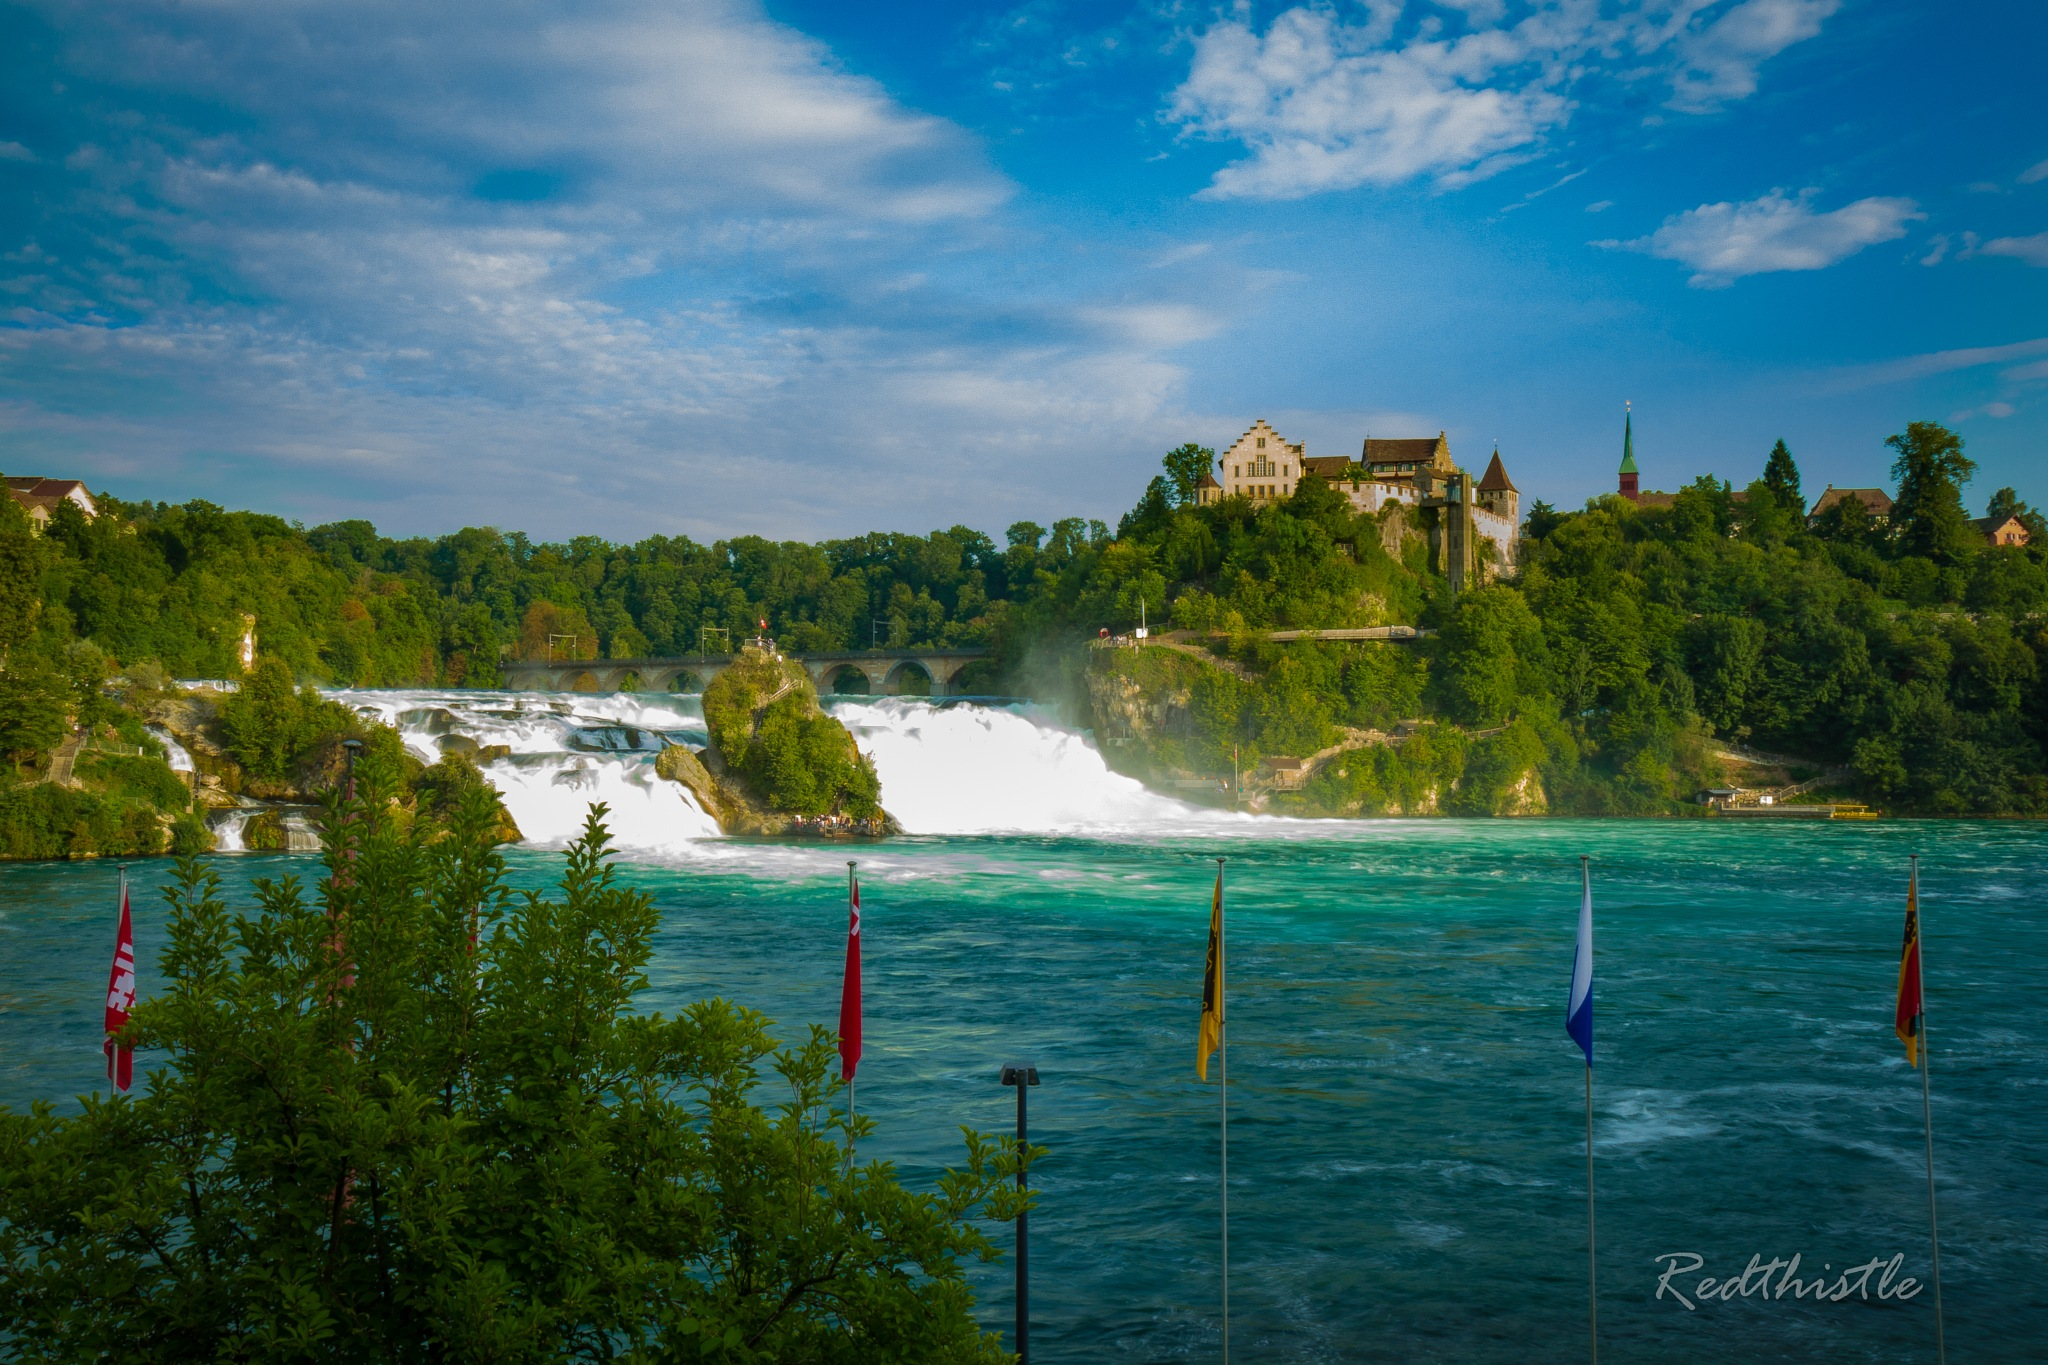 Early evening at the Rheinfall by Icethistle Photography